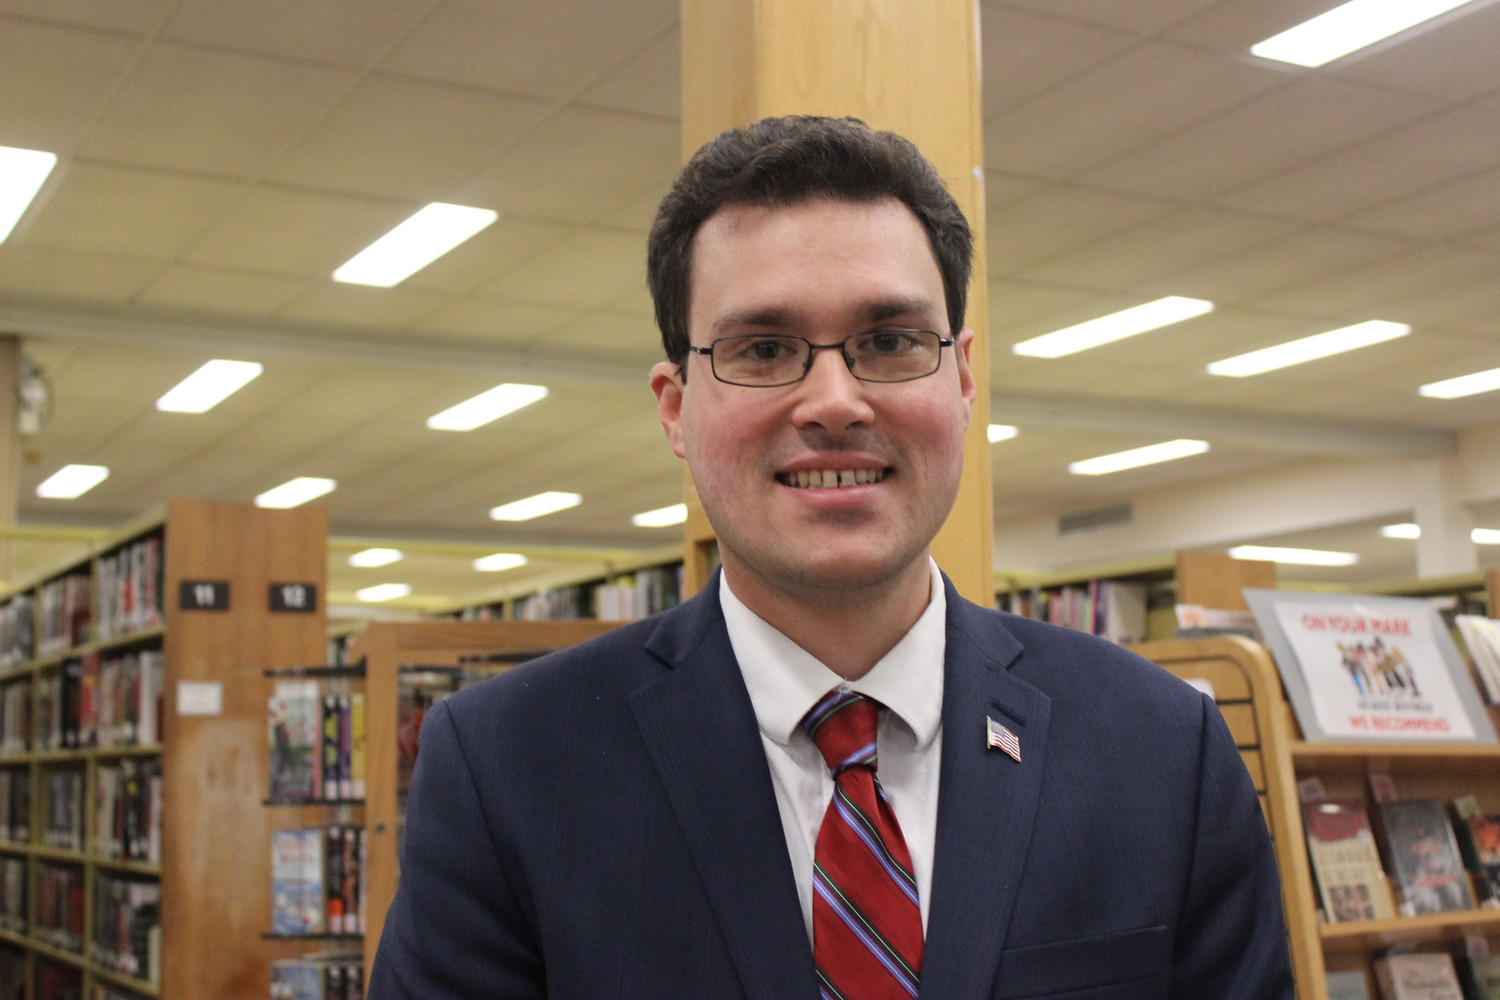 John Mikulin, a Republican from Levittown, was elected New York Assemblyman for District 17 after a special election on April 24.